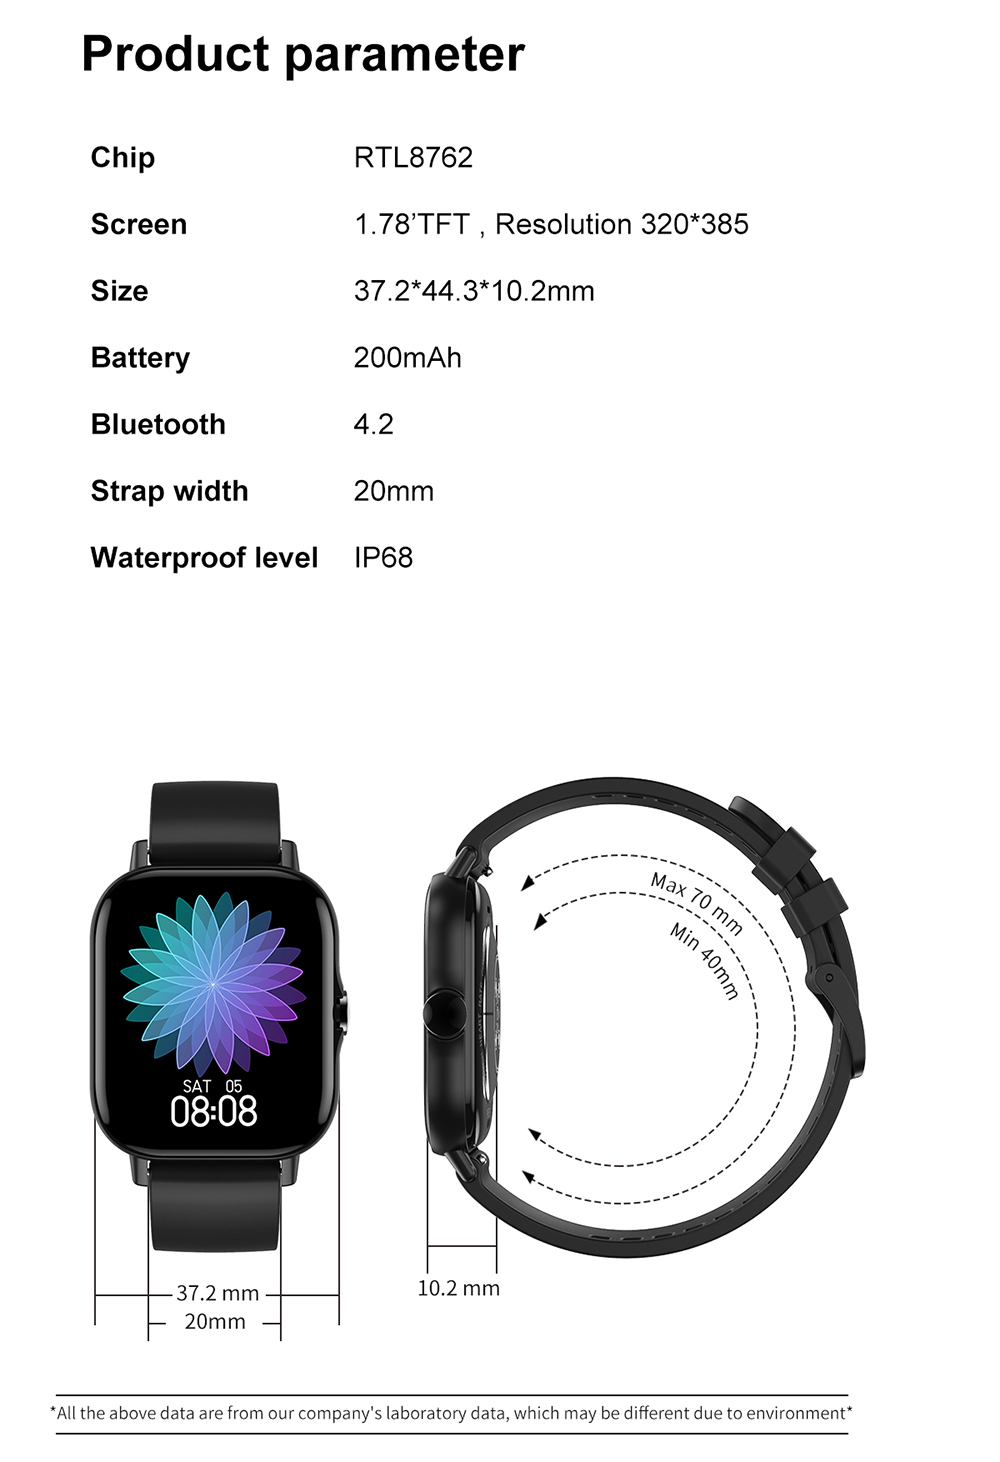 Hcd8ae0c1a6fc4873b1e61dc80622611eK For Xiaomi IOS Apple Phone 1.78inch Smart Watch Android Men IP68 Waterproof Full Touch Woman Smartwatch Women 2021 Answer Call